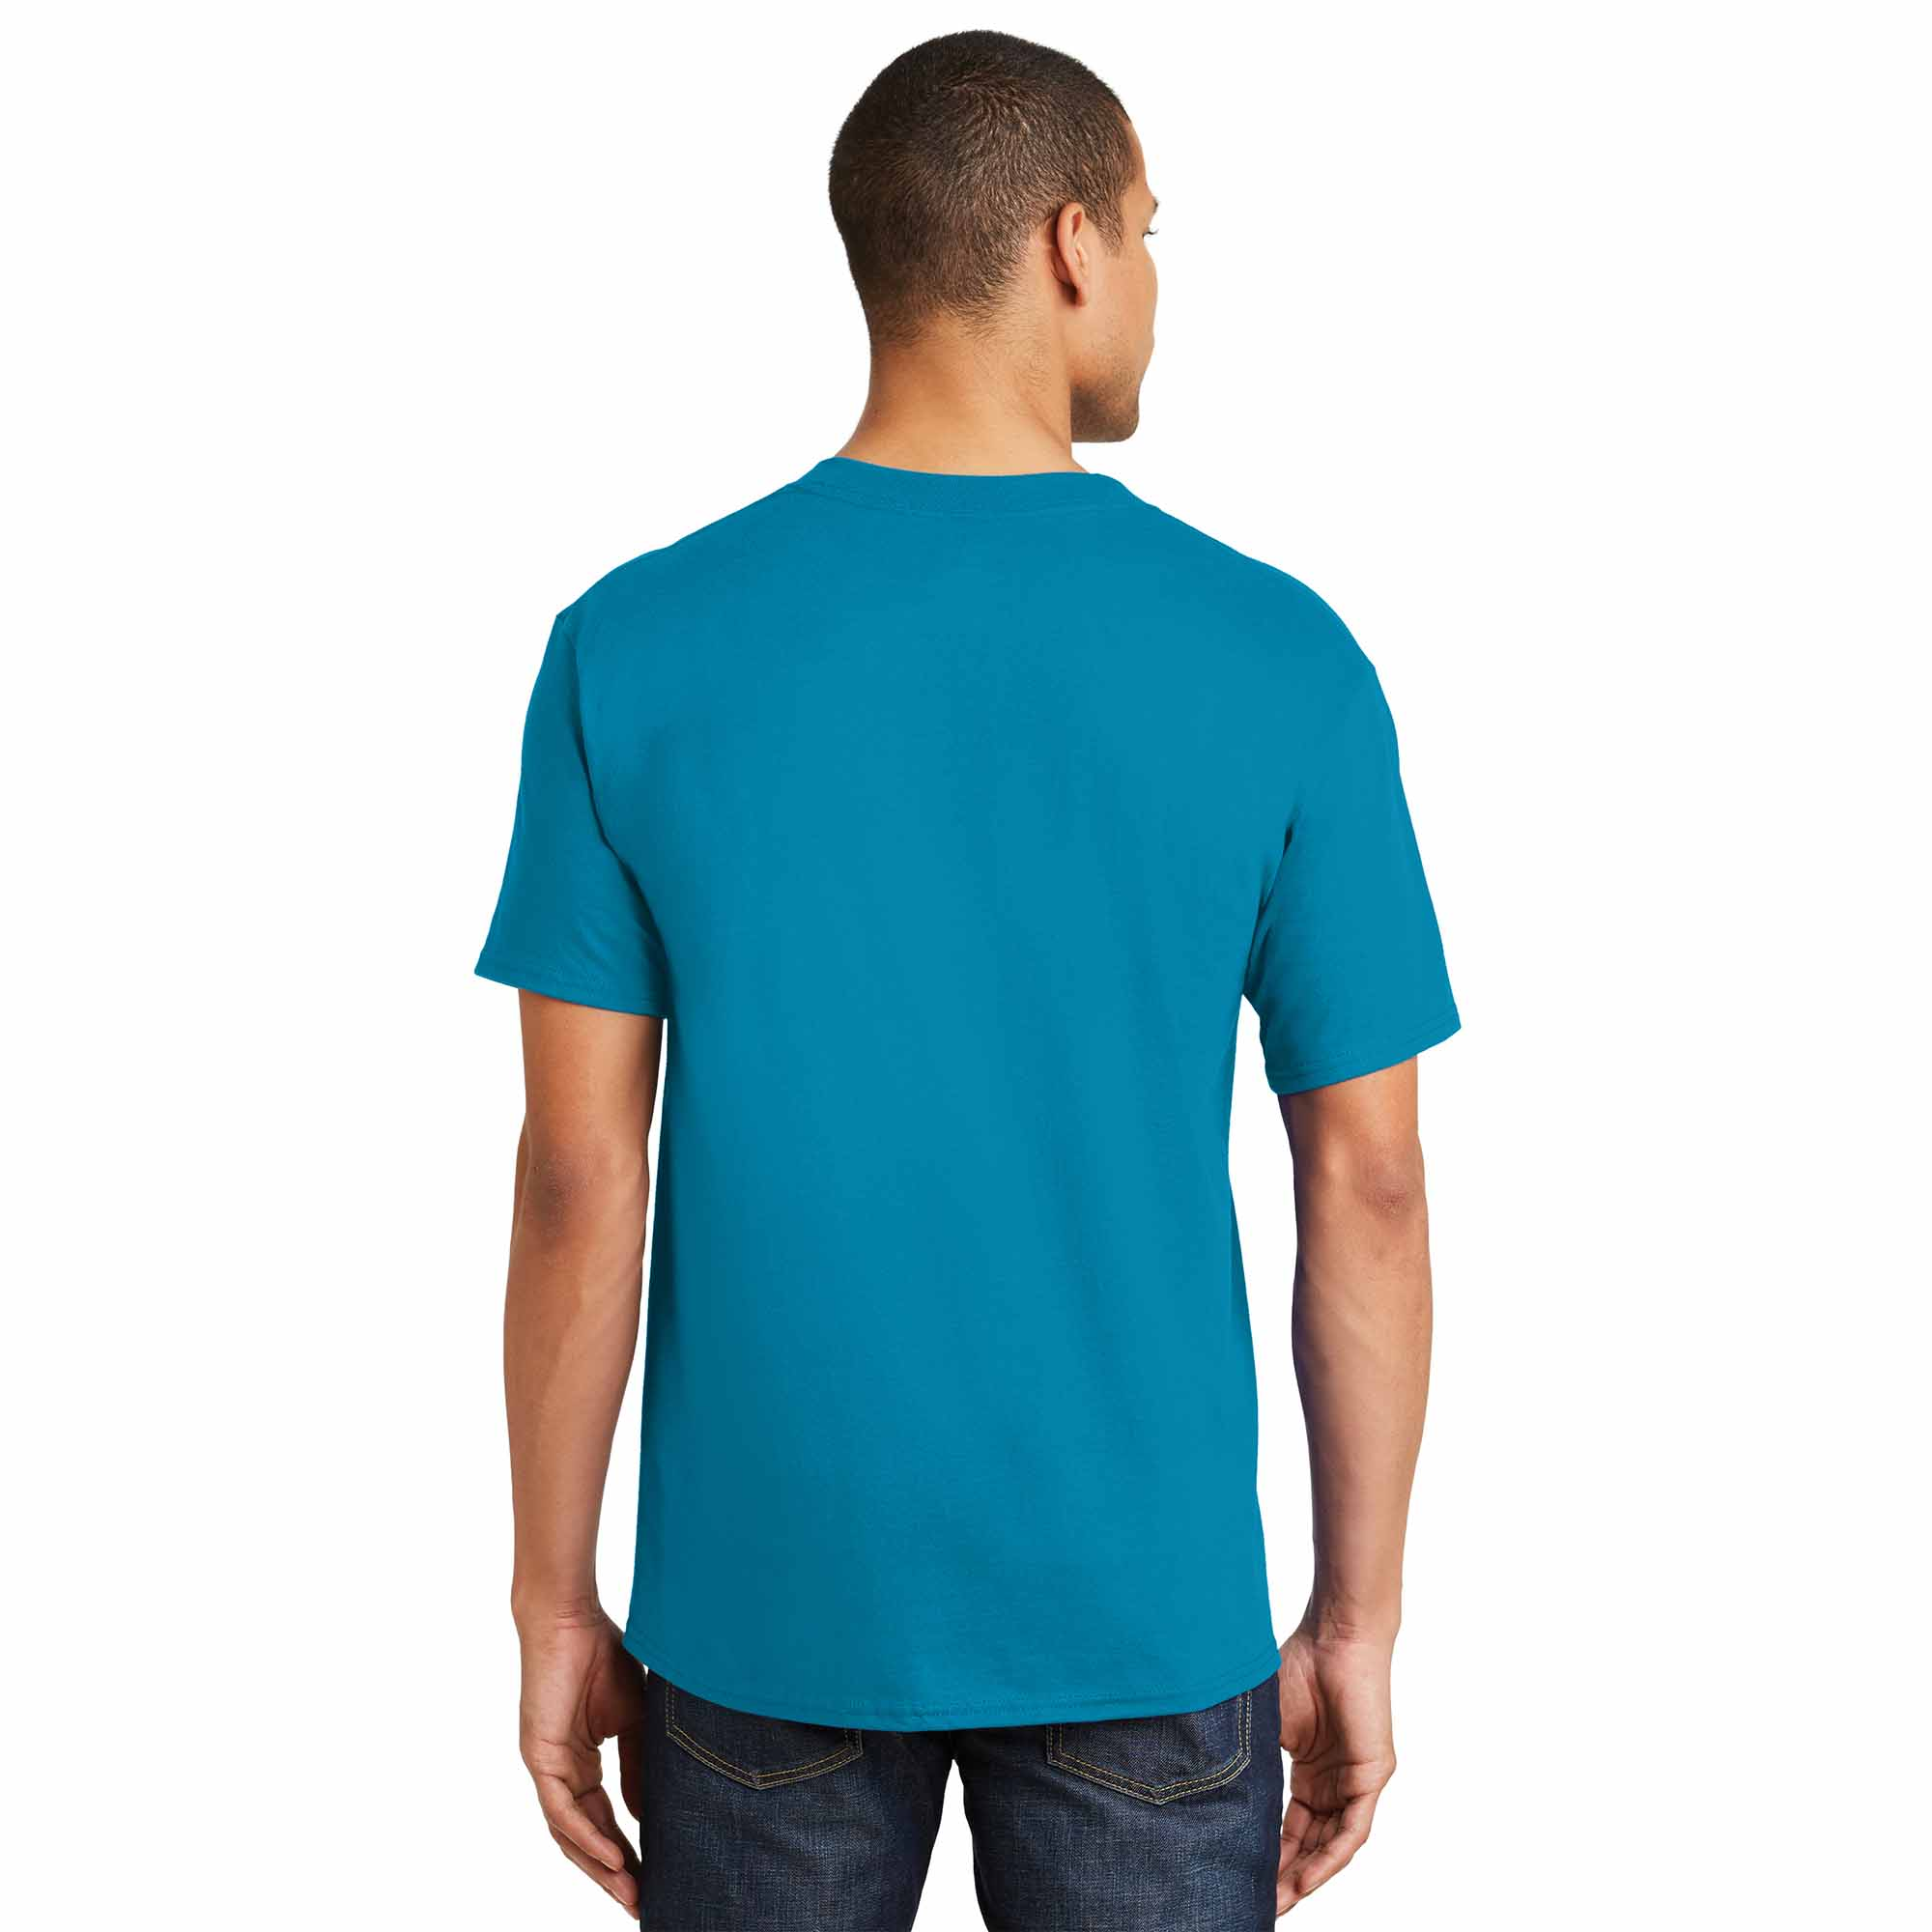 Hanes 5180 beefy t cotton t shirt teal for Hanes beefy t custom shirts